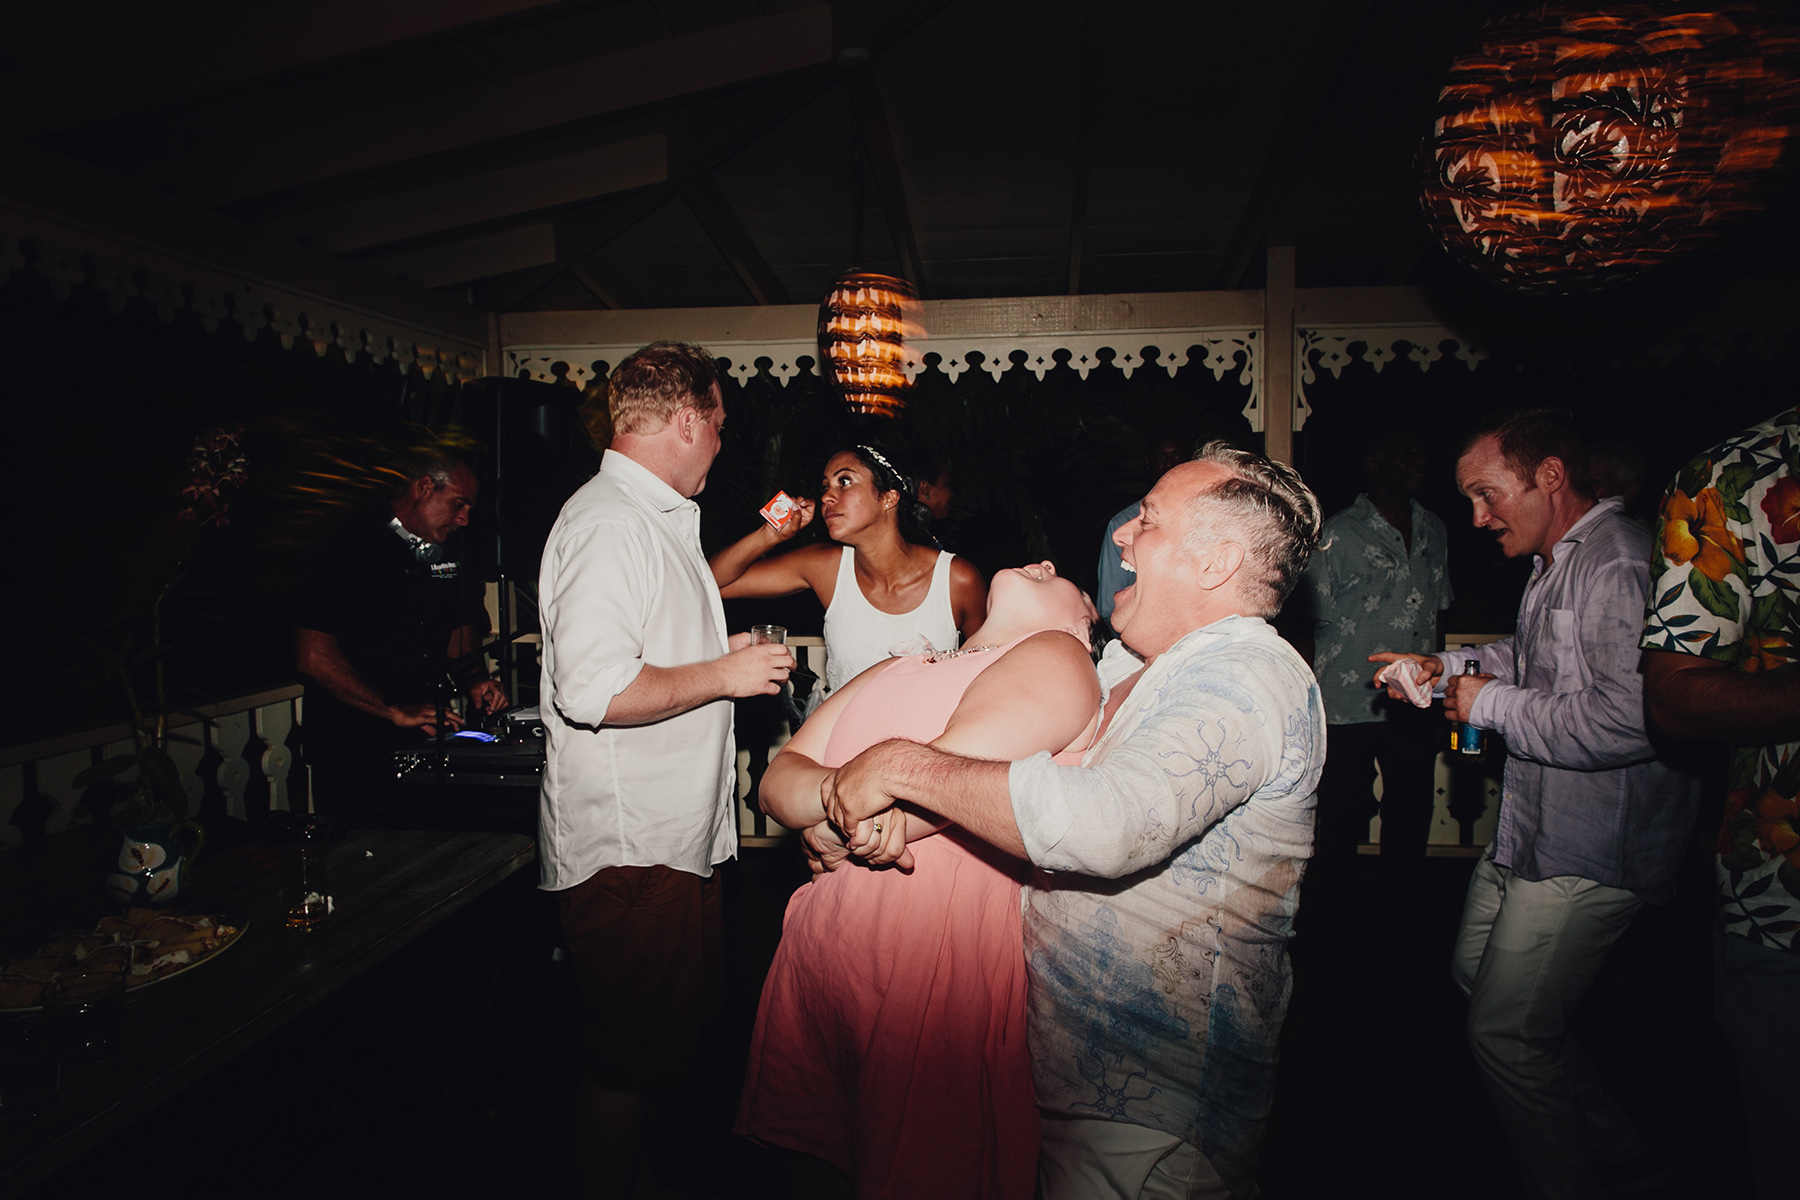 St-Lucia-Wedding-Photos-0124.JPG